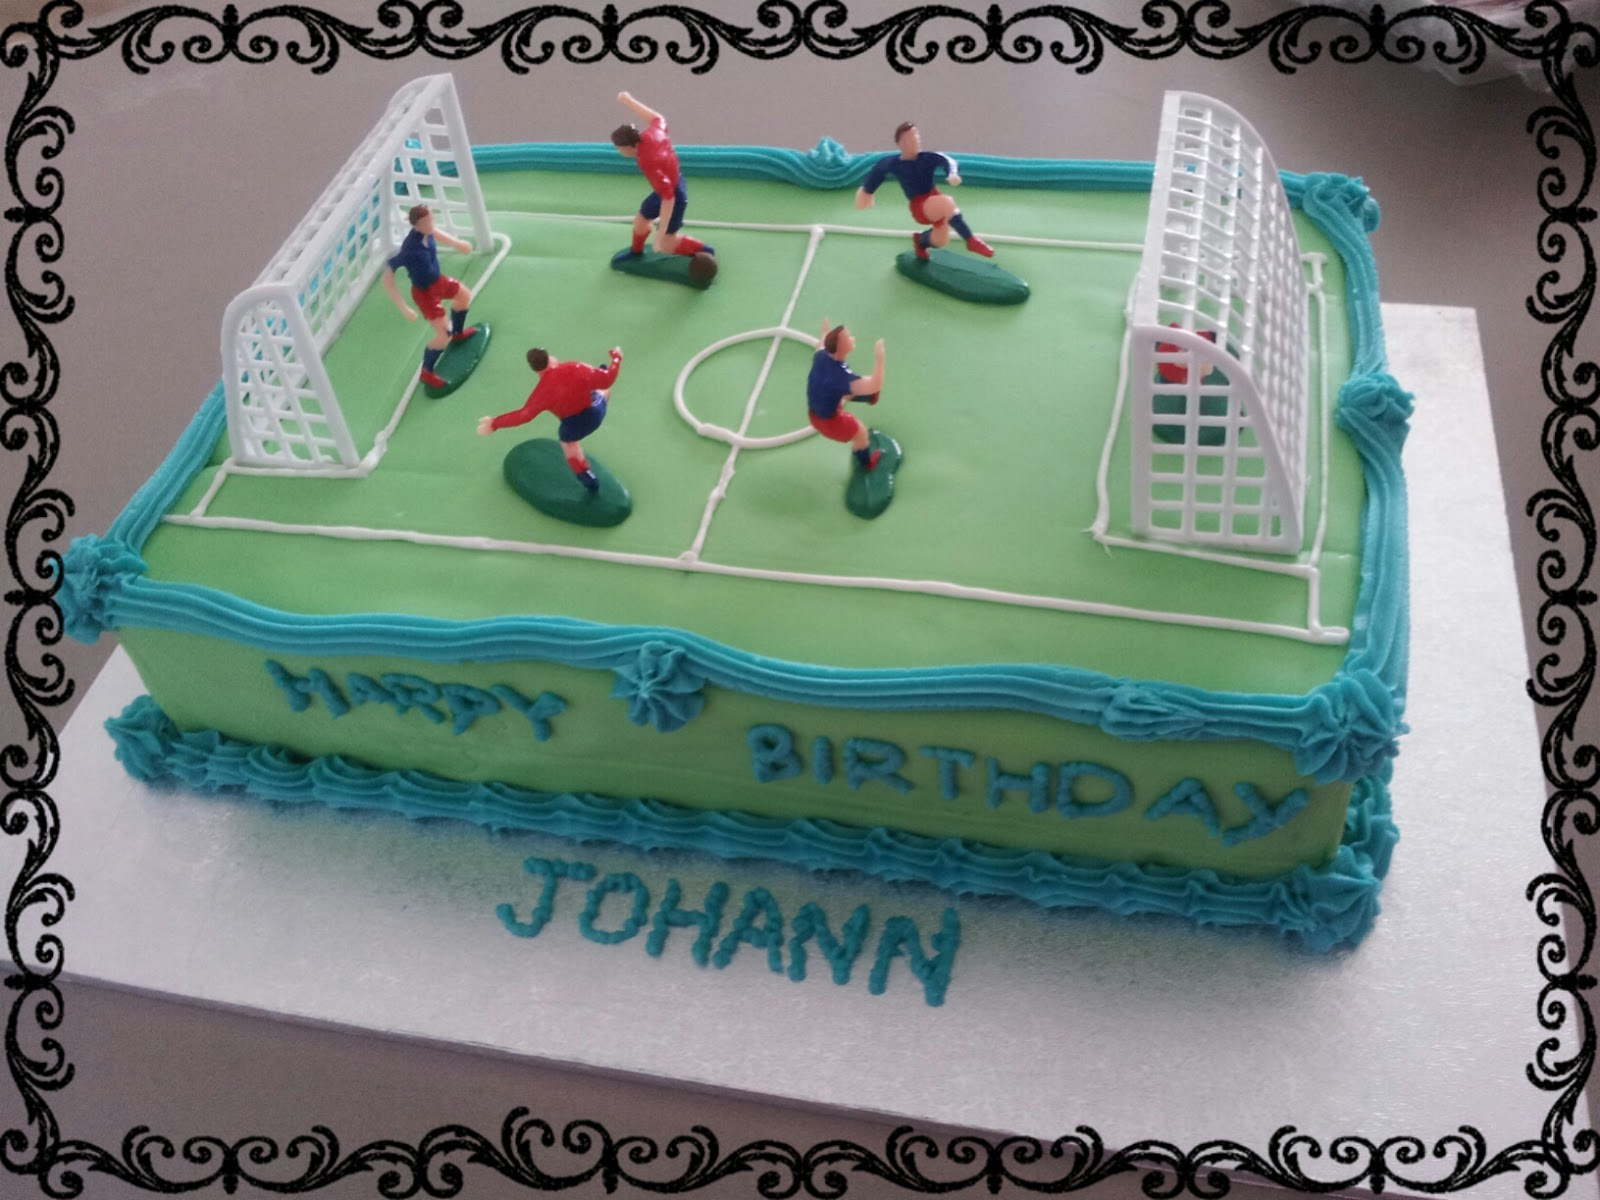 Made This Soccer Field Birthday Cake For A 13 Year Old Boy That Really Loves Inside Has His 3 Favourite Colours Blue Green And Red Also To Match